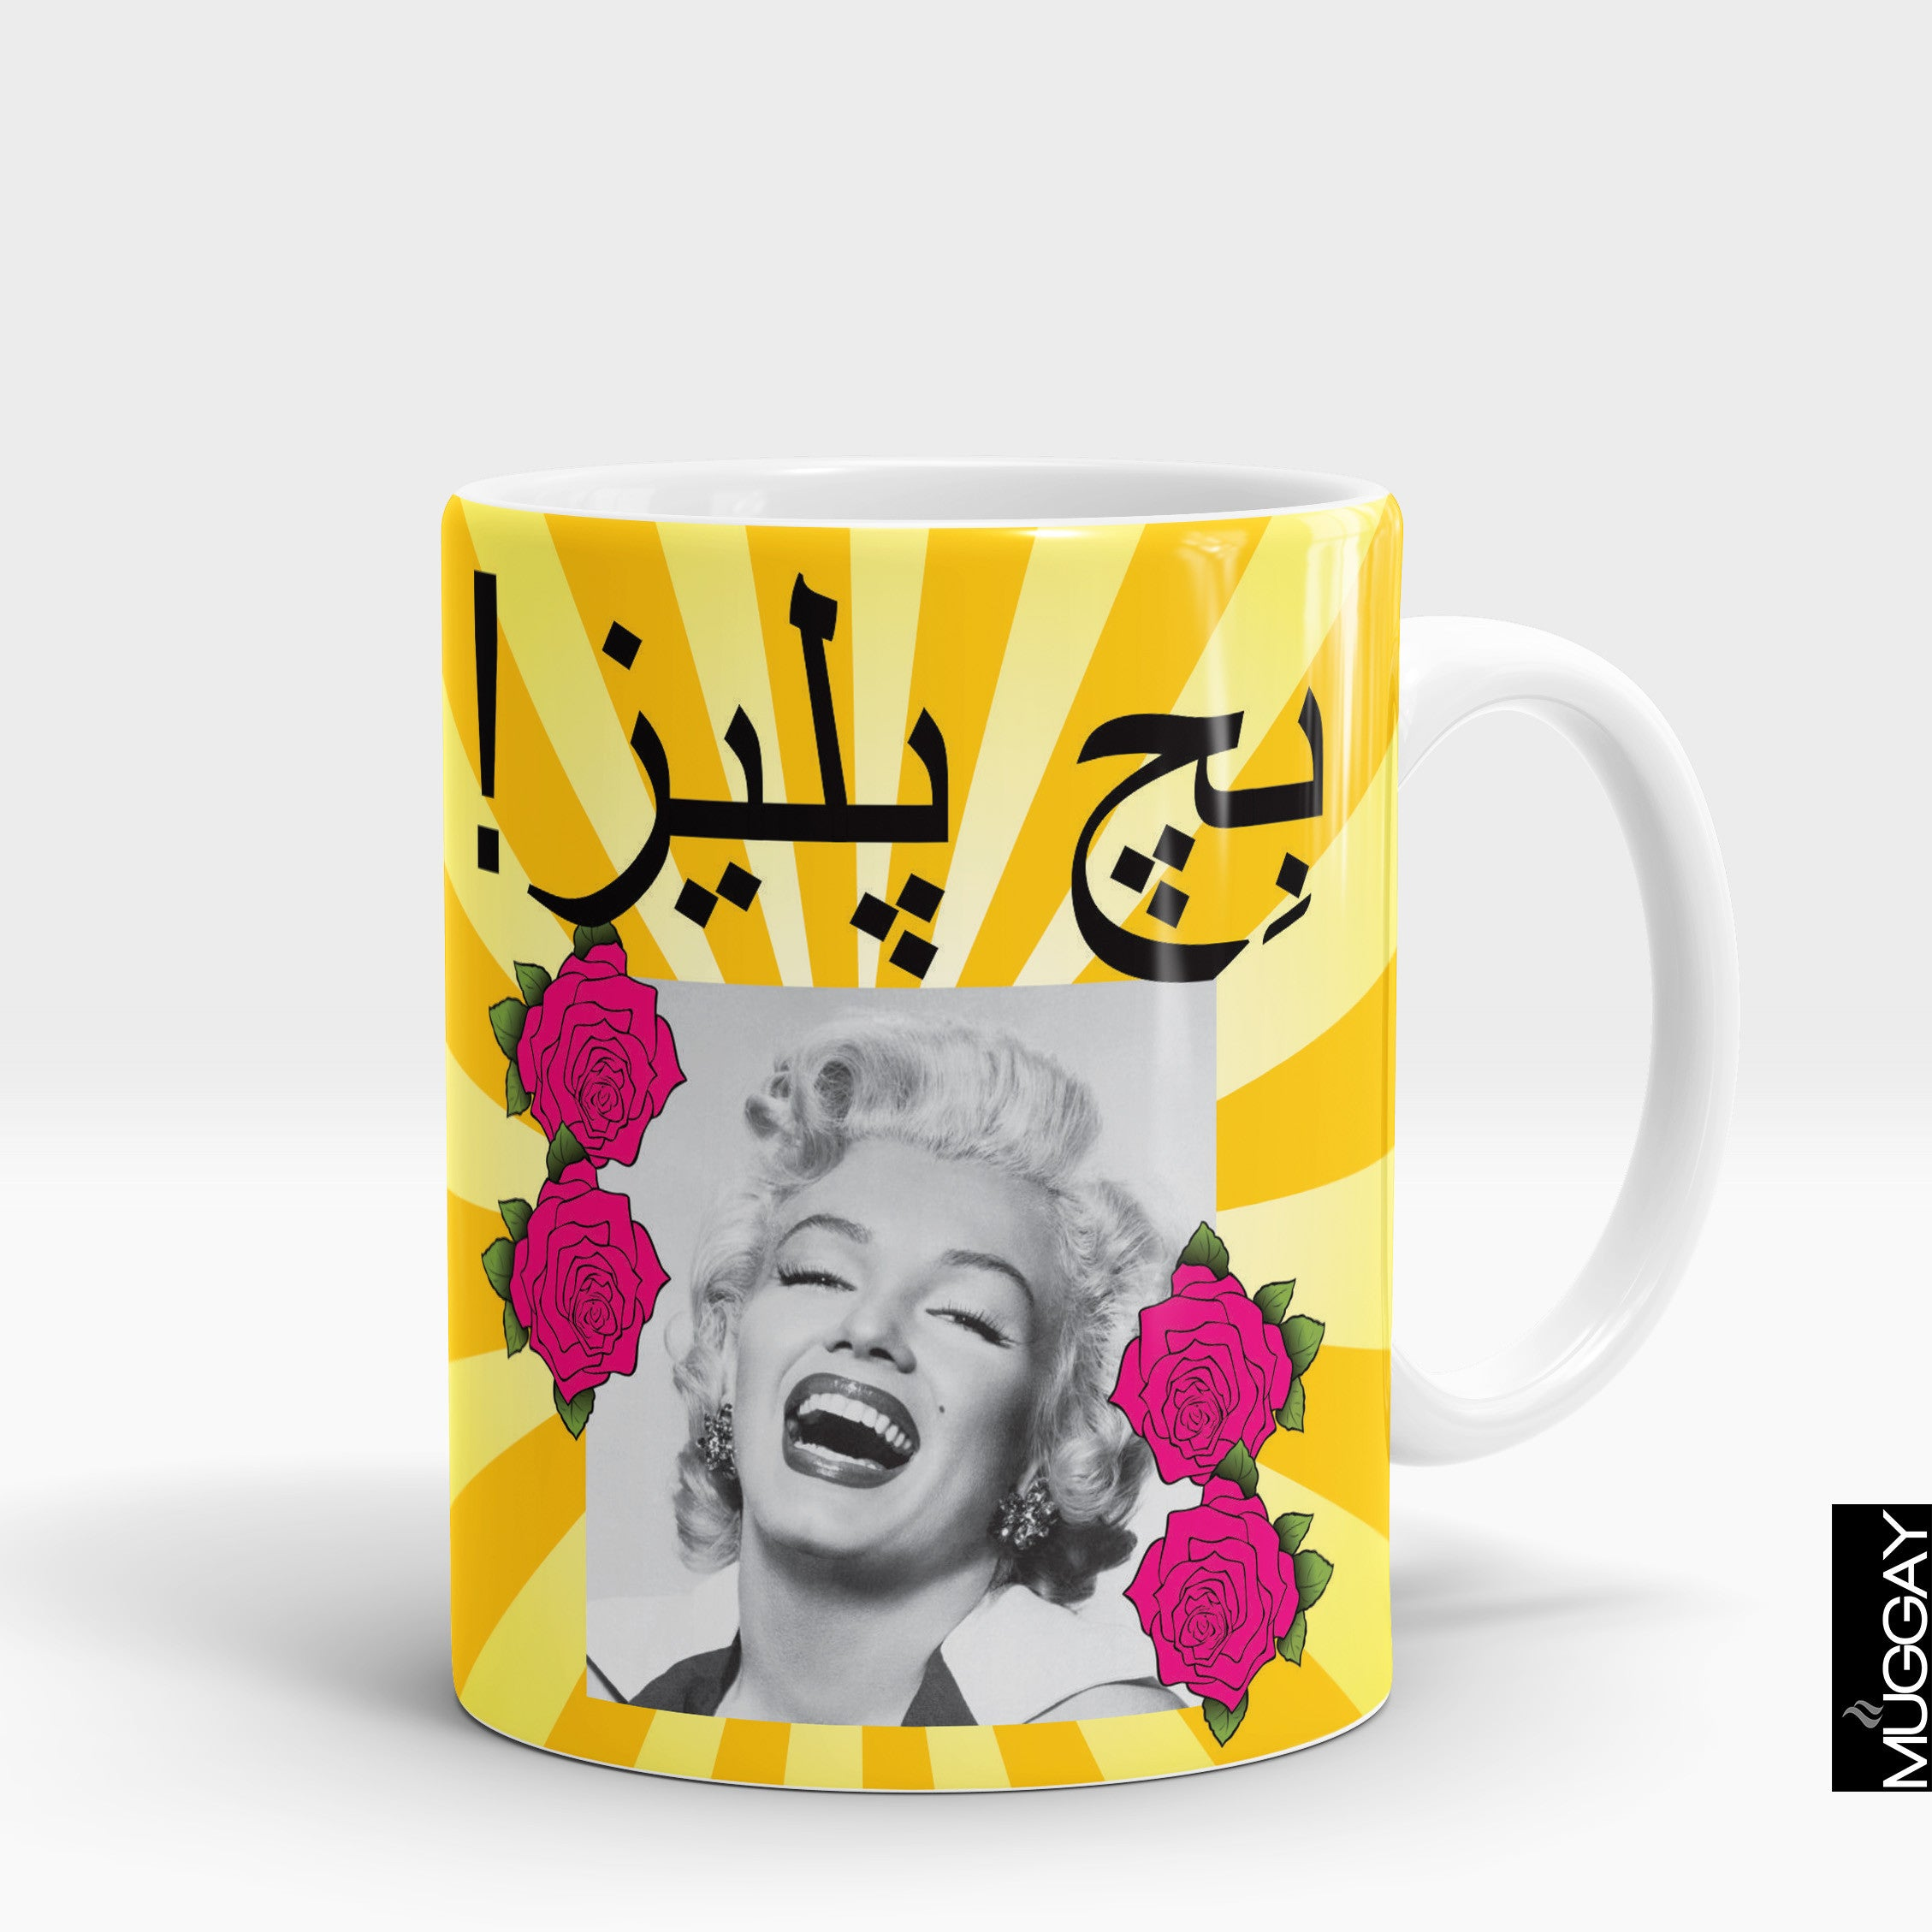 Desi funny Mugs14 - Muggay.com - Mugs - Printing shop - truck Art mugs - Mug printing - Customized printing - Digital printing - Muggay